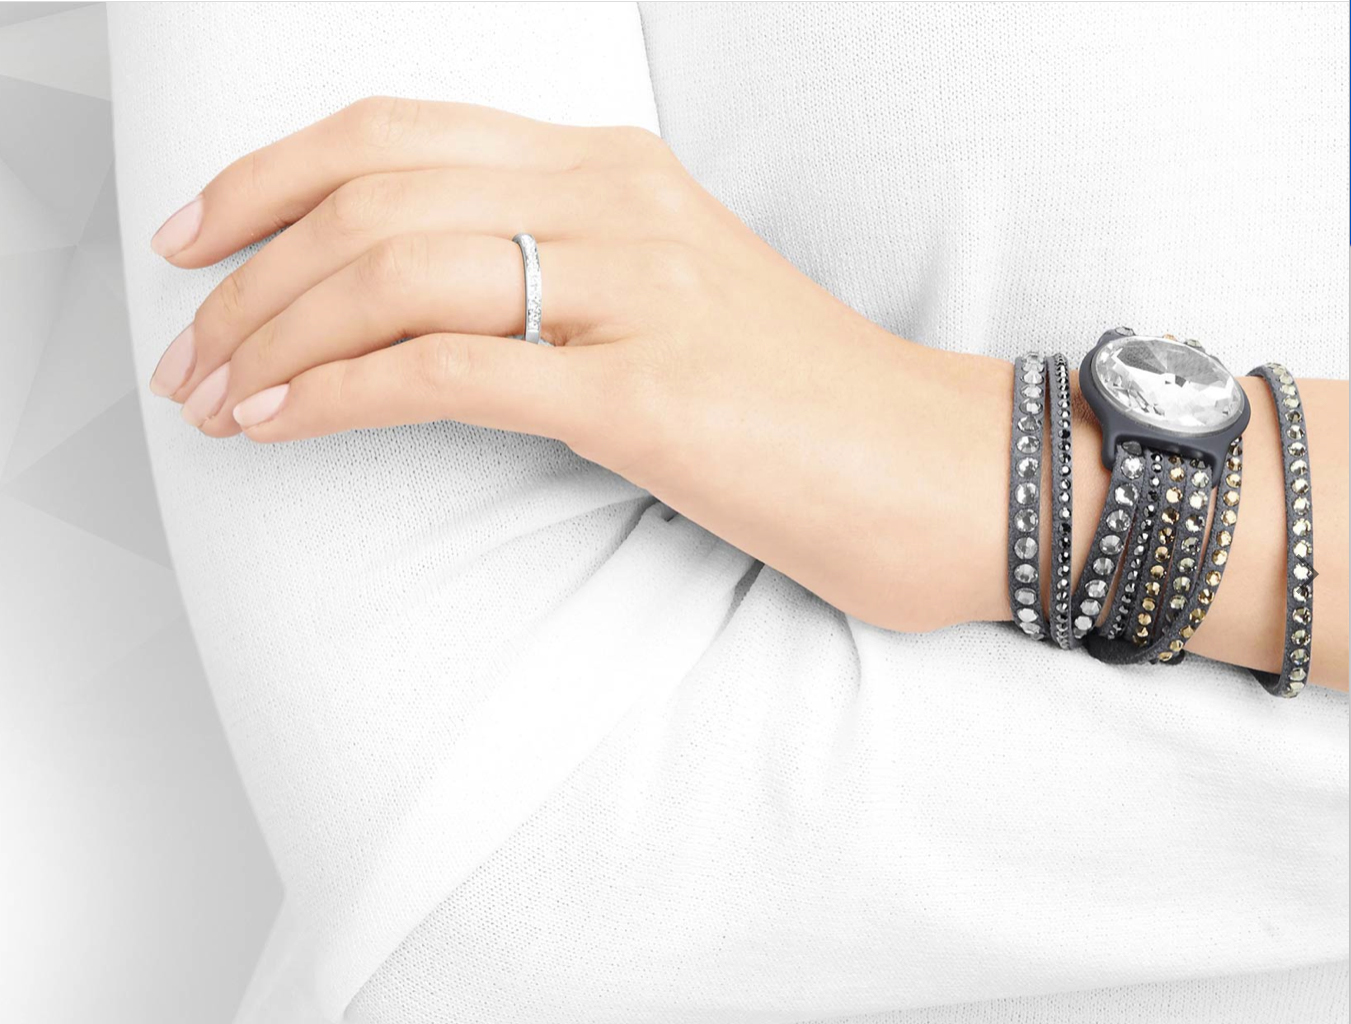 CES 2015: Misfit and Swarovski announce the first solar-powered fitness tracker